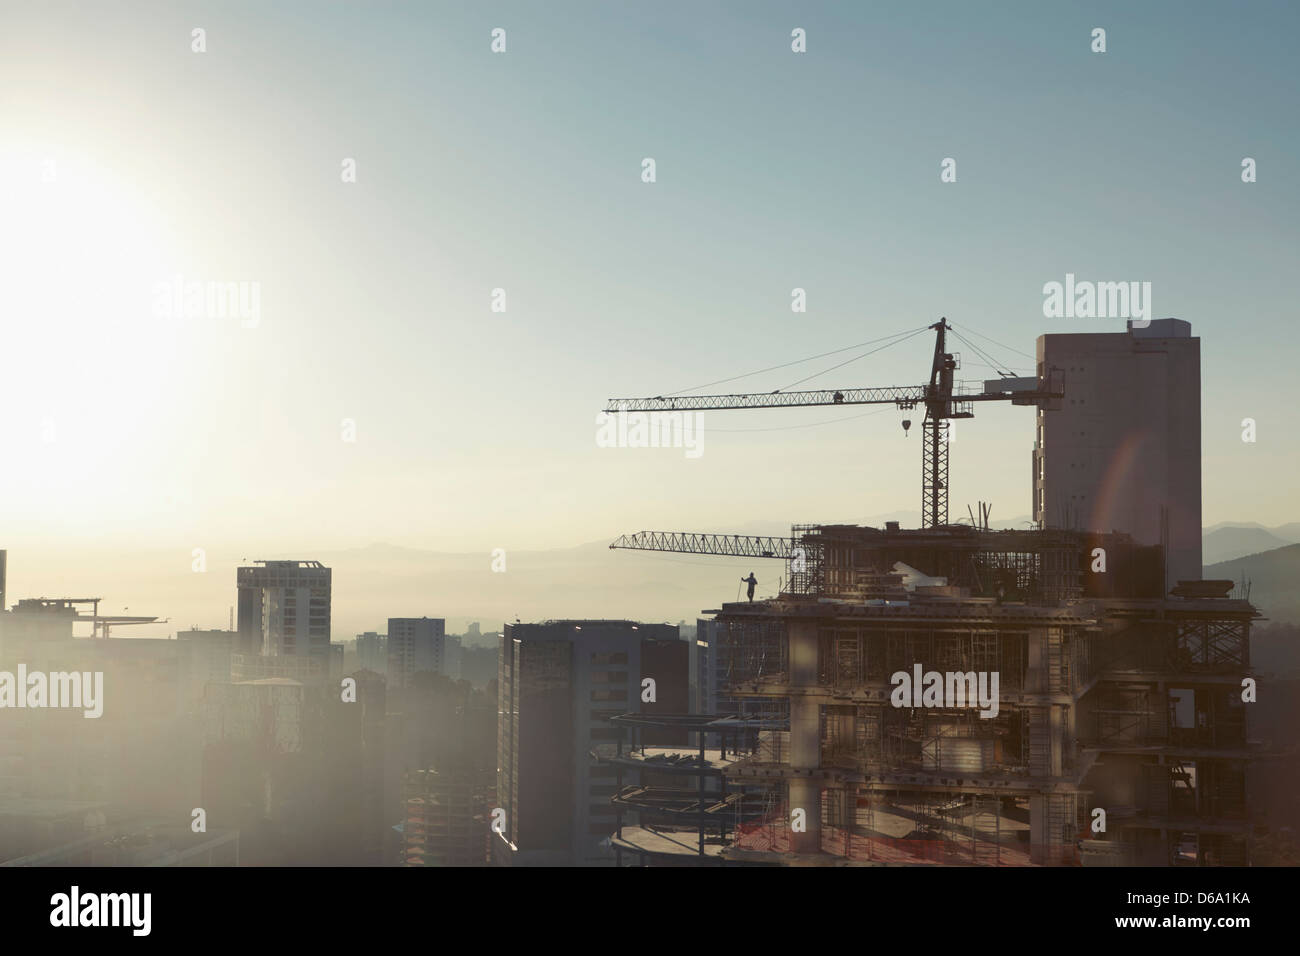 Crane and building in city center - Stock Image